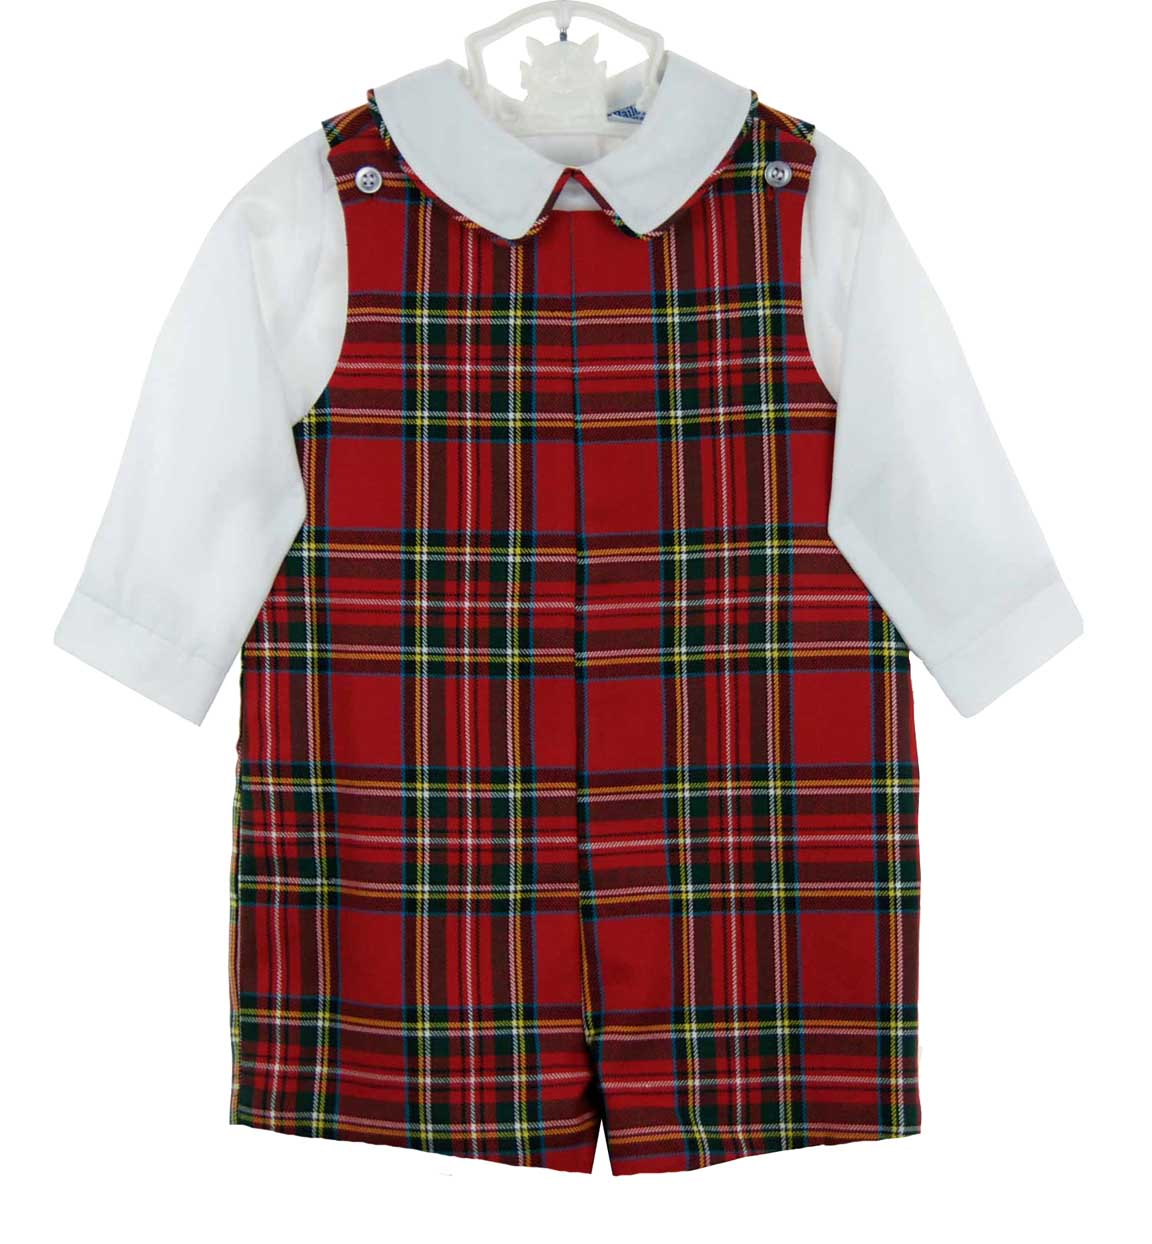 68c76ee2e Bailey Boys red tartan plaid shortall and shirt set,red tartan plaid ...